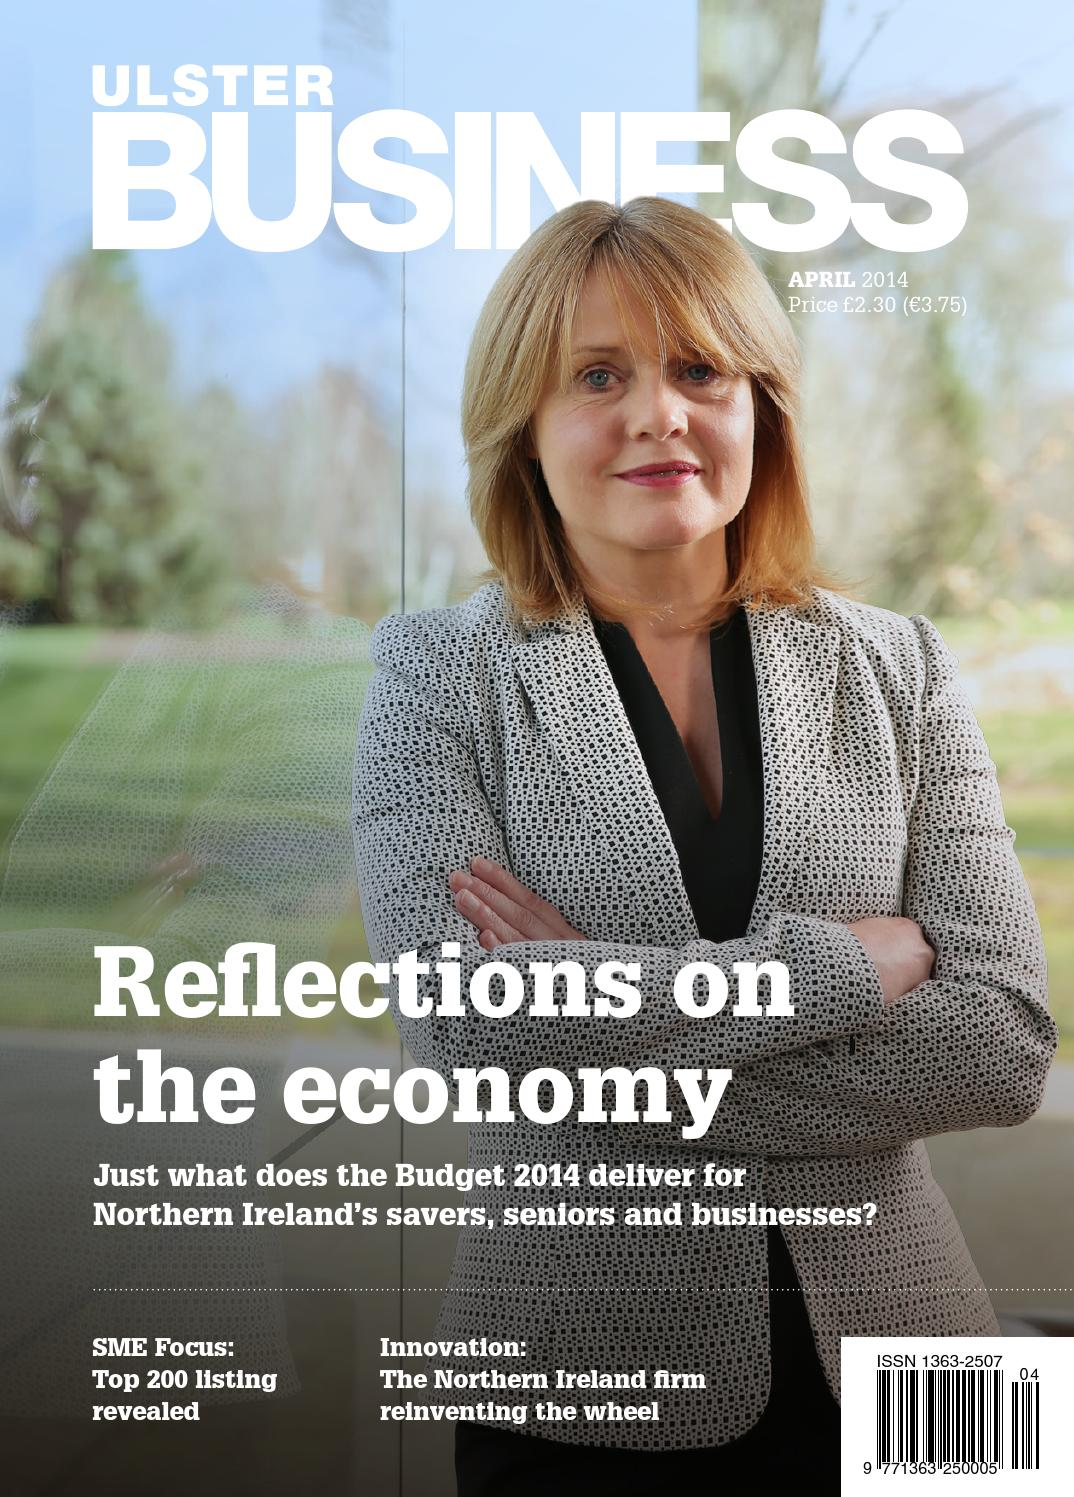 Ulster Business - April 2014 by Ulster Business - issuu